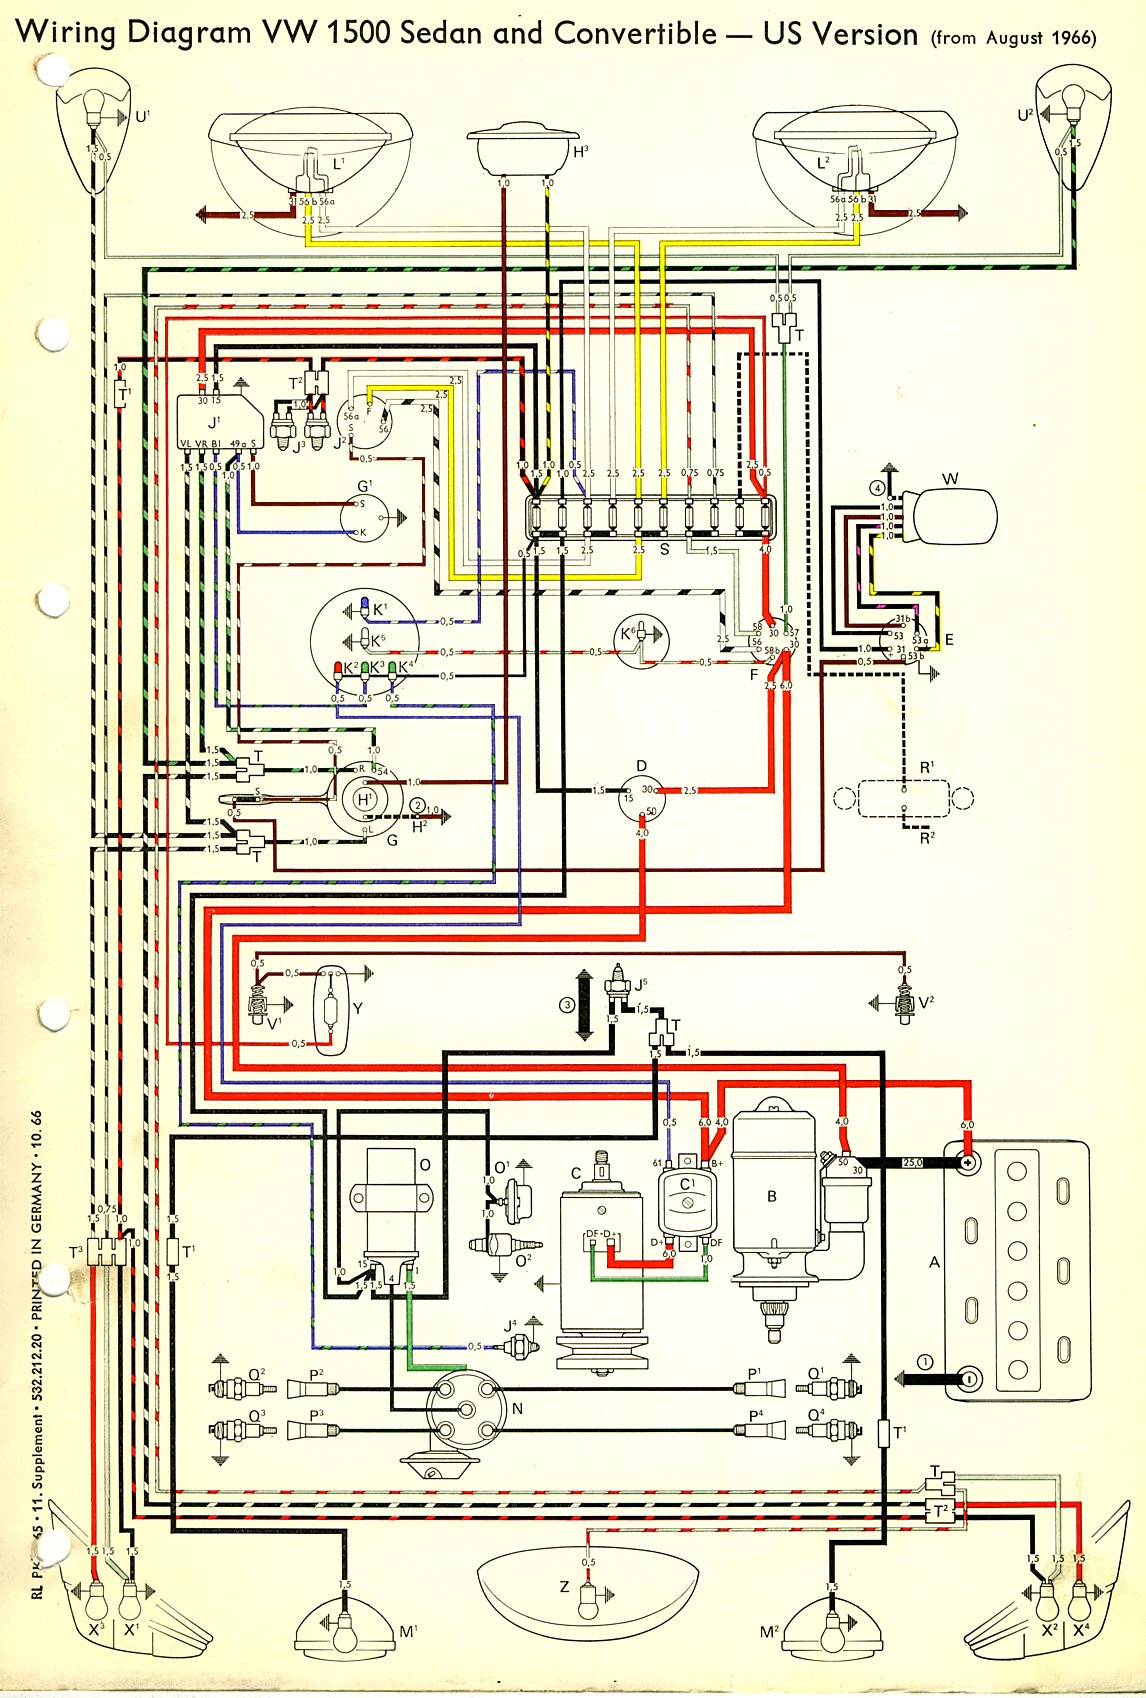 bug_67_USA 1967 beetle wiring diagram (usa) thegoldenbug com 1957 vw bug wiring diagram at soozxer.org